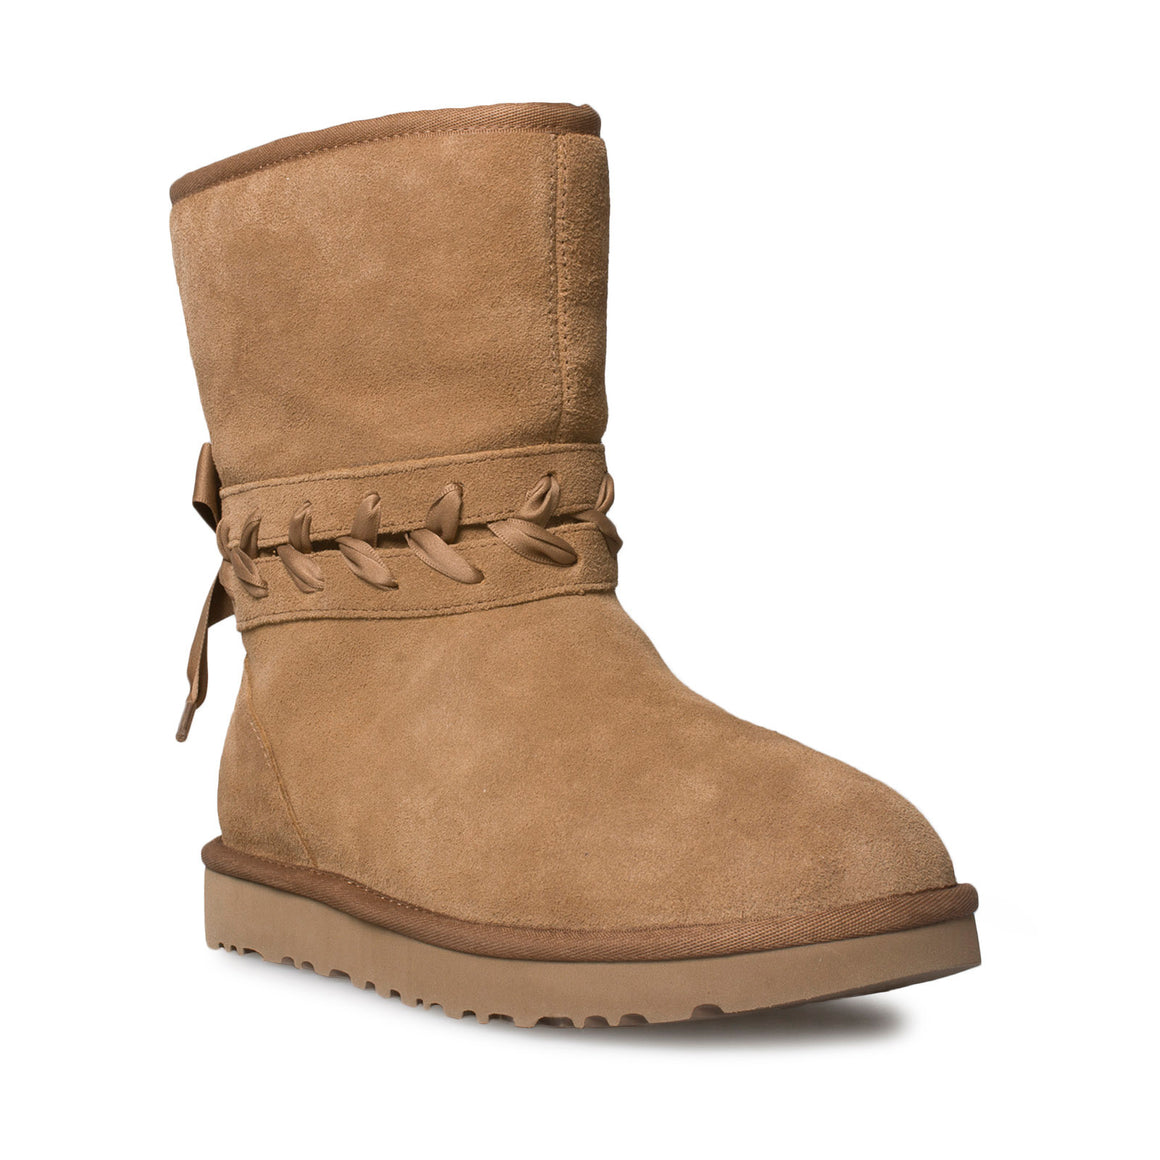 UGG Classic Lace Short Chestnut Boots - Women's